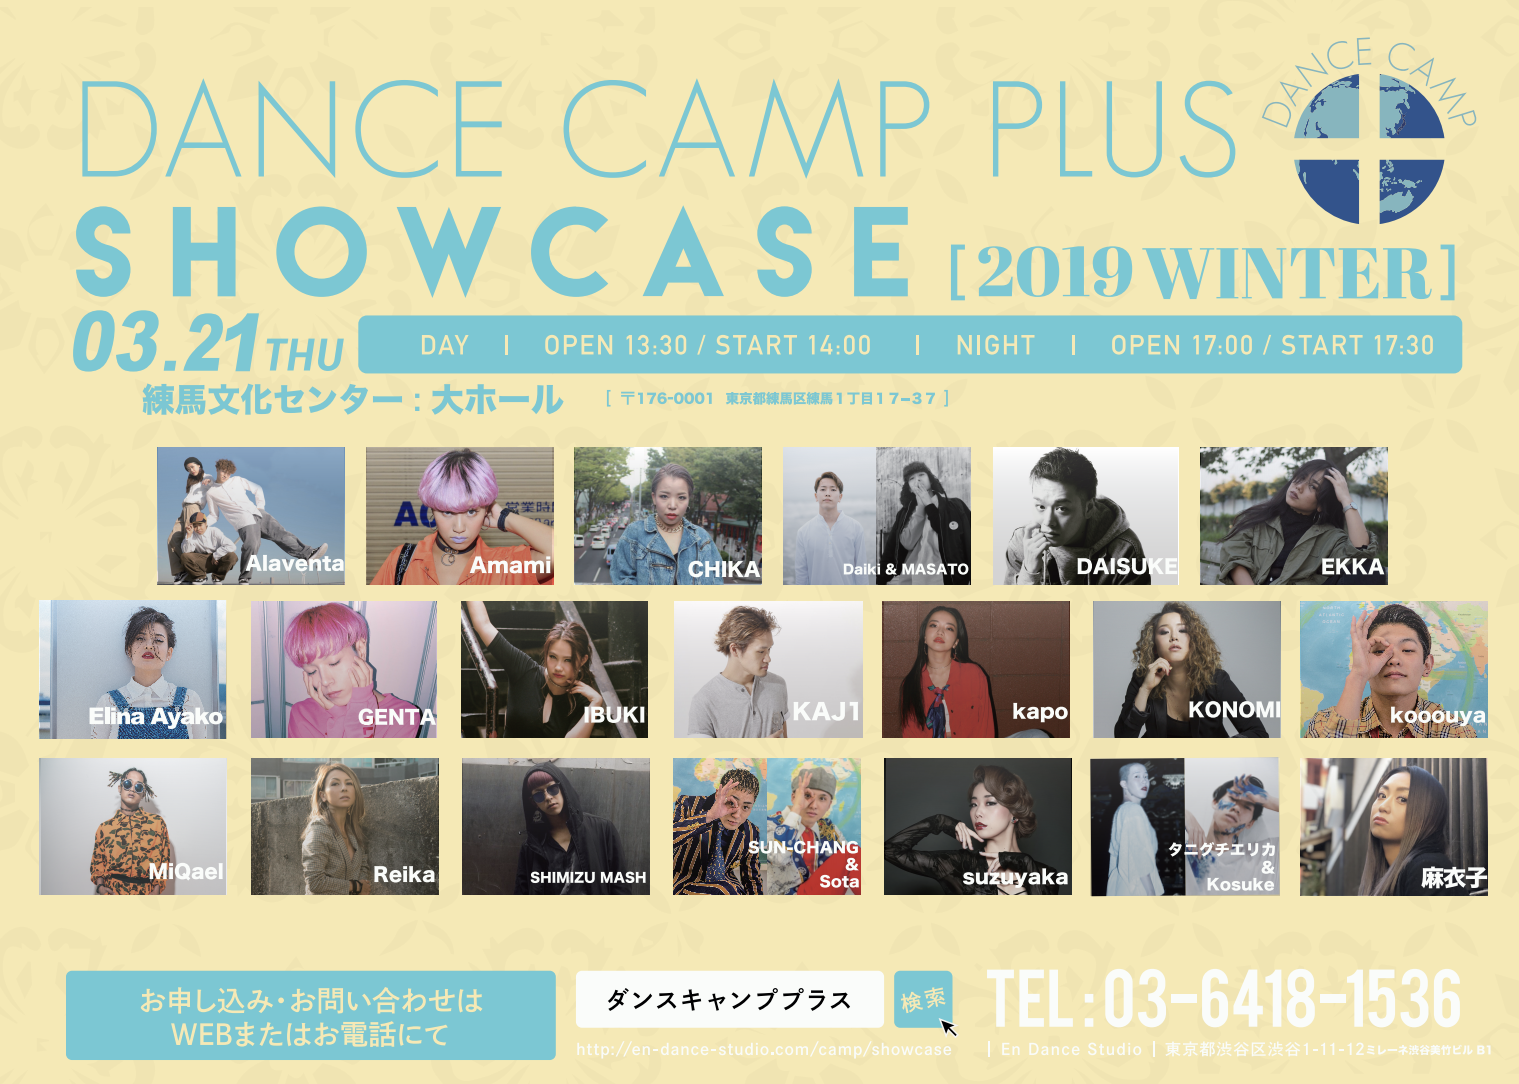 DC +SHOWC 2019 winter